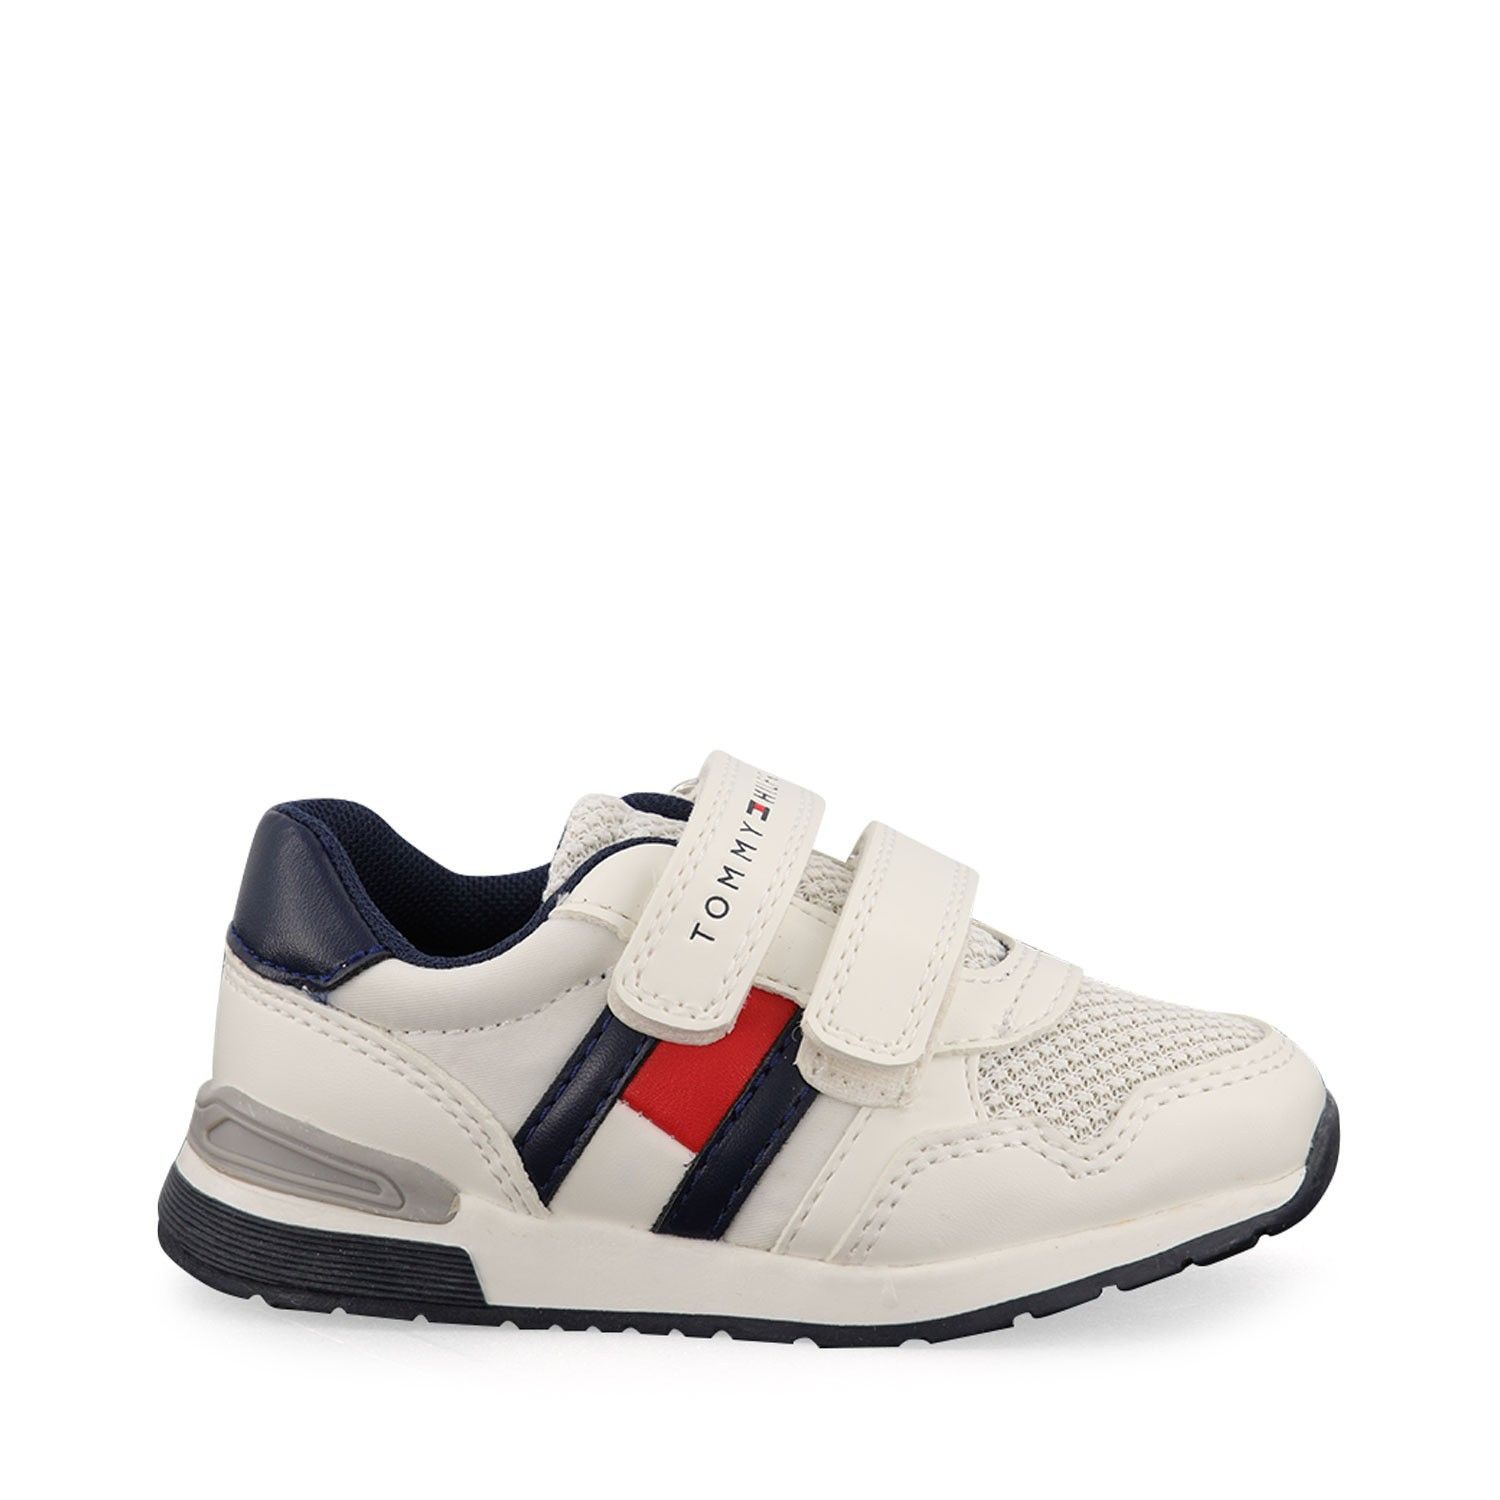 Picture of Tommy Hilfiger 30723 kids sneakers white